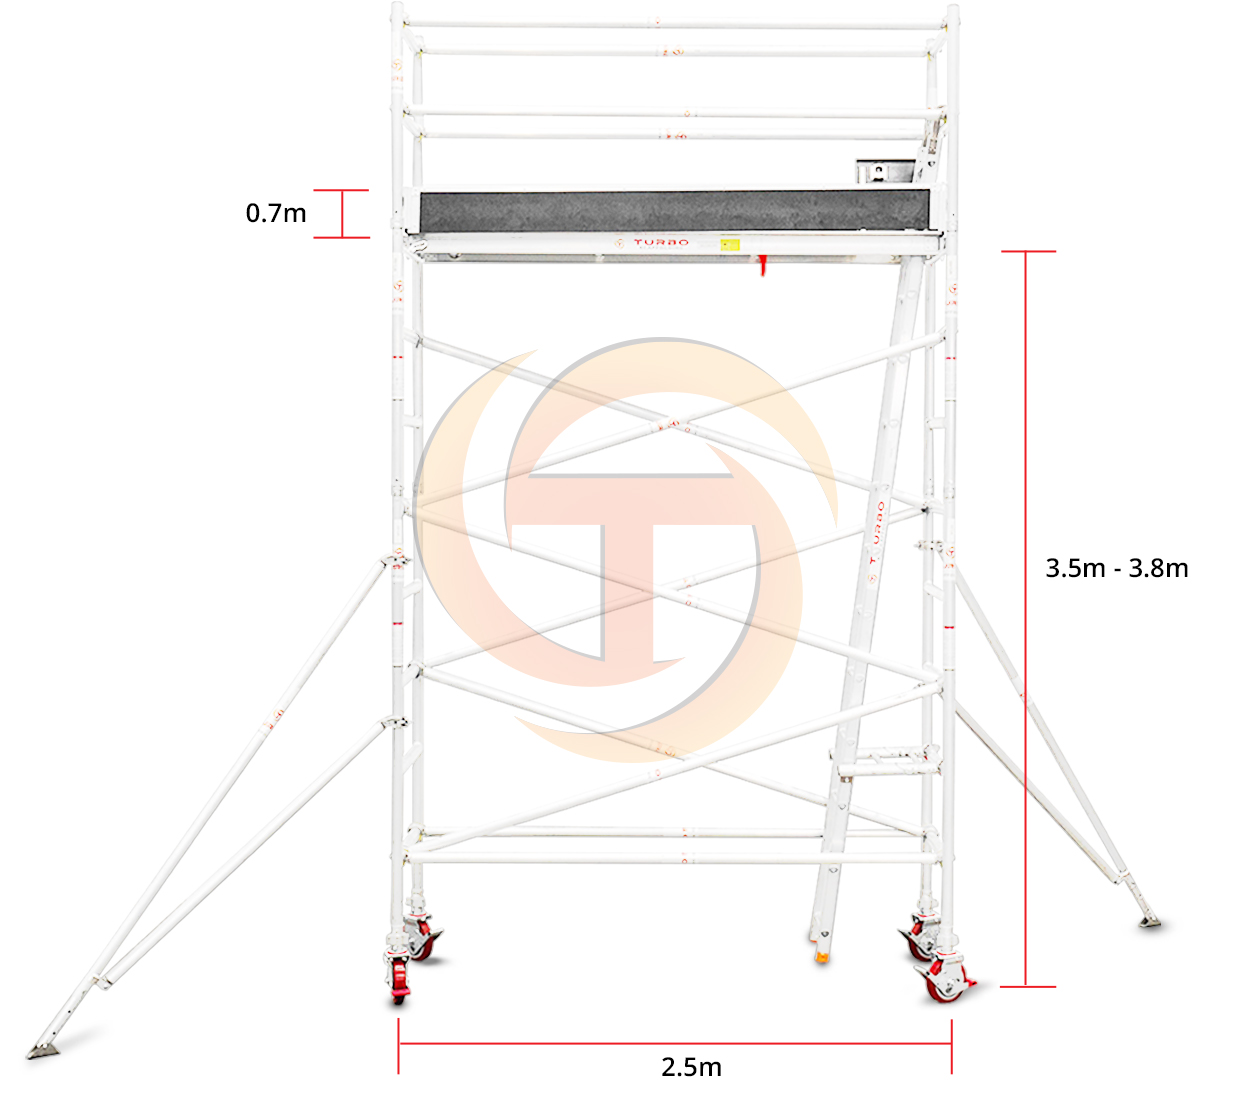 3.5m – 3.8m Narrow Mobile Tower (Standing Height)